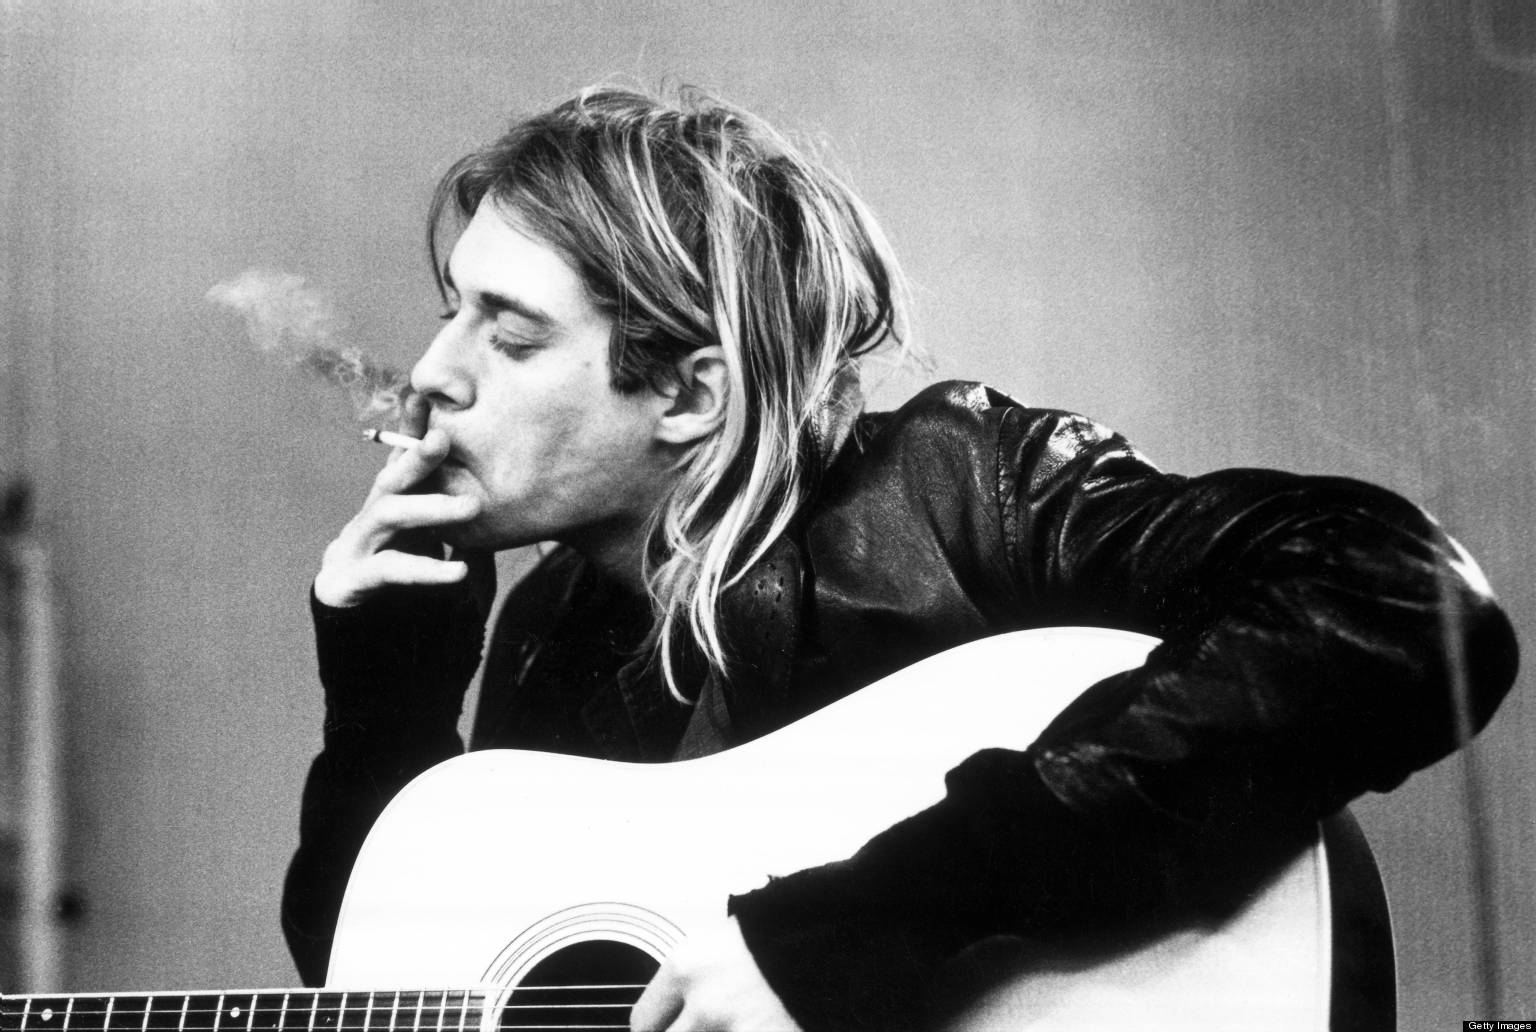 NETHERLANDS - NOVEMBER 25:  HILVERSUM  Photo of Kurt COBAIN and NIRVANA, Kurt Cobain recording in Hilversum Studios smoking cigarette  (Photo by Michel Linssen/Redferns)